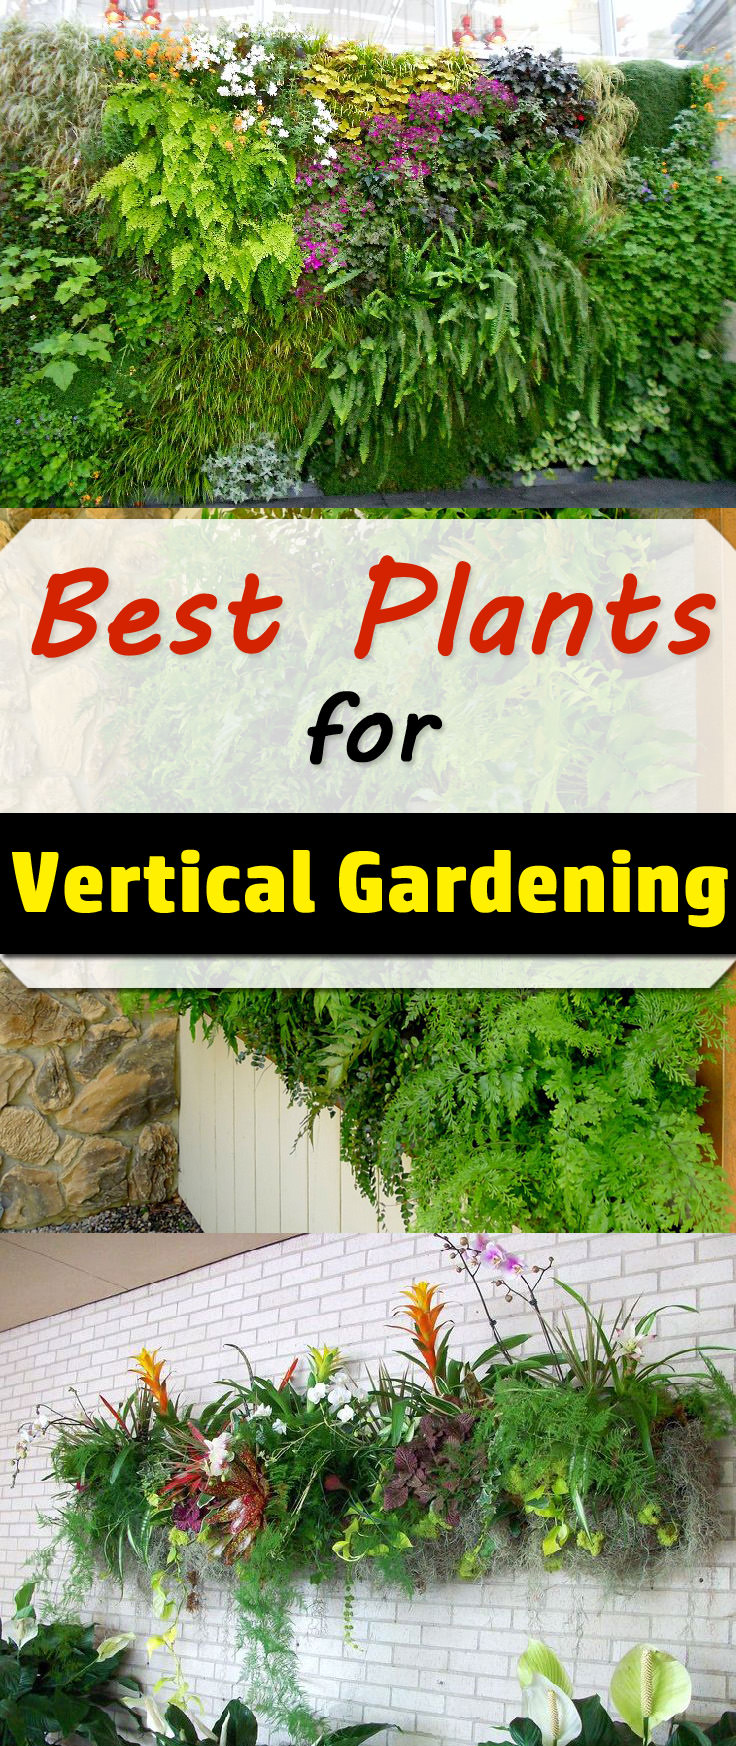 The Correct Selection Of Plants Plays An Important Role In The Design And  Functioning Of Vertical